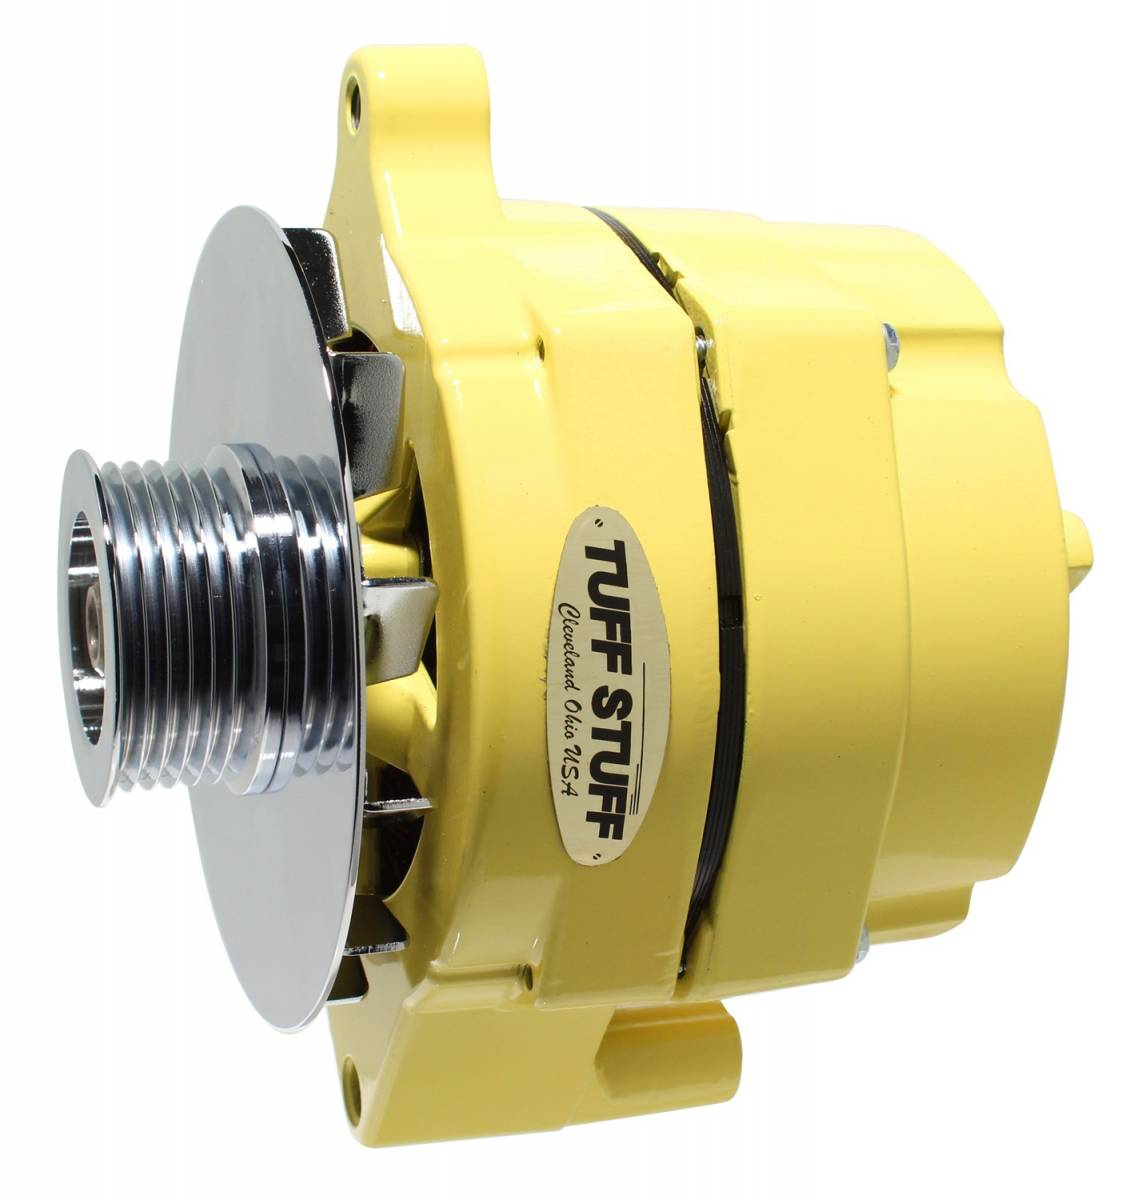 Tuff Stuff Performance - Alternator 100 AMP Smooth Back 1 Wire 6 Groove Pulley Yellow Powdercoat w/Chrome Accents 7068RF6GY